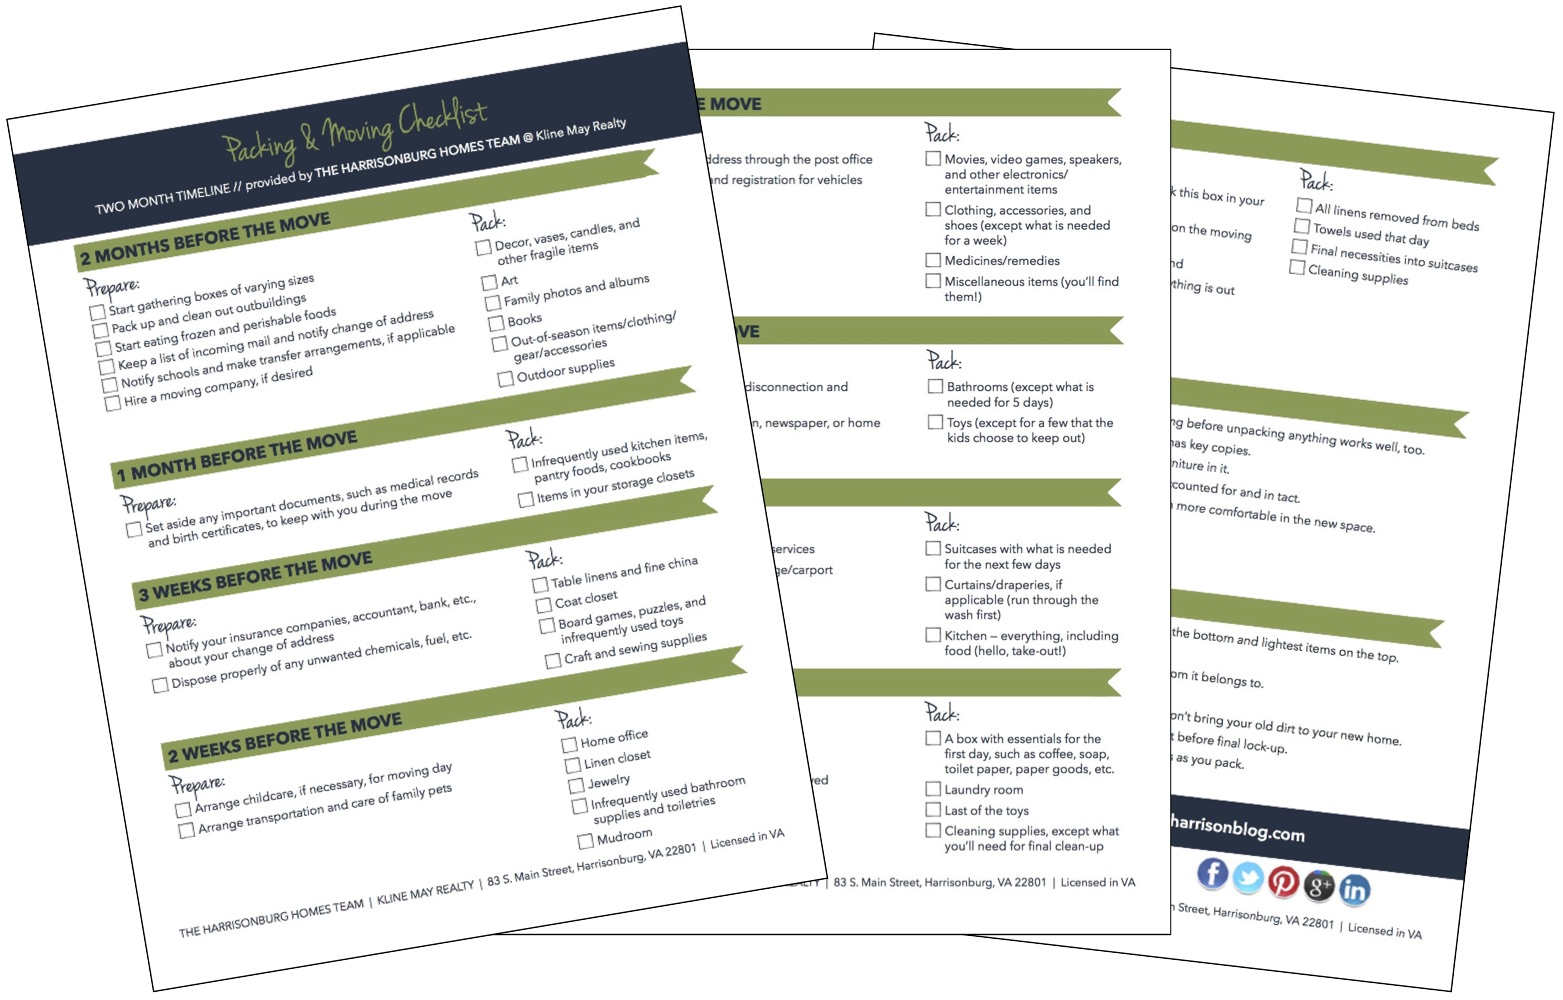 Packing and Moving Checklist [printable]   The Harrisonburg Homes Team